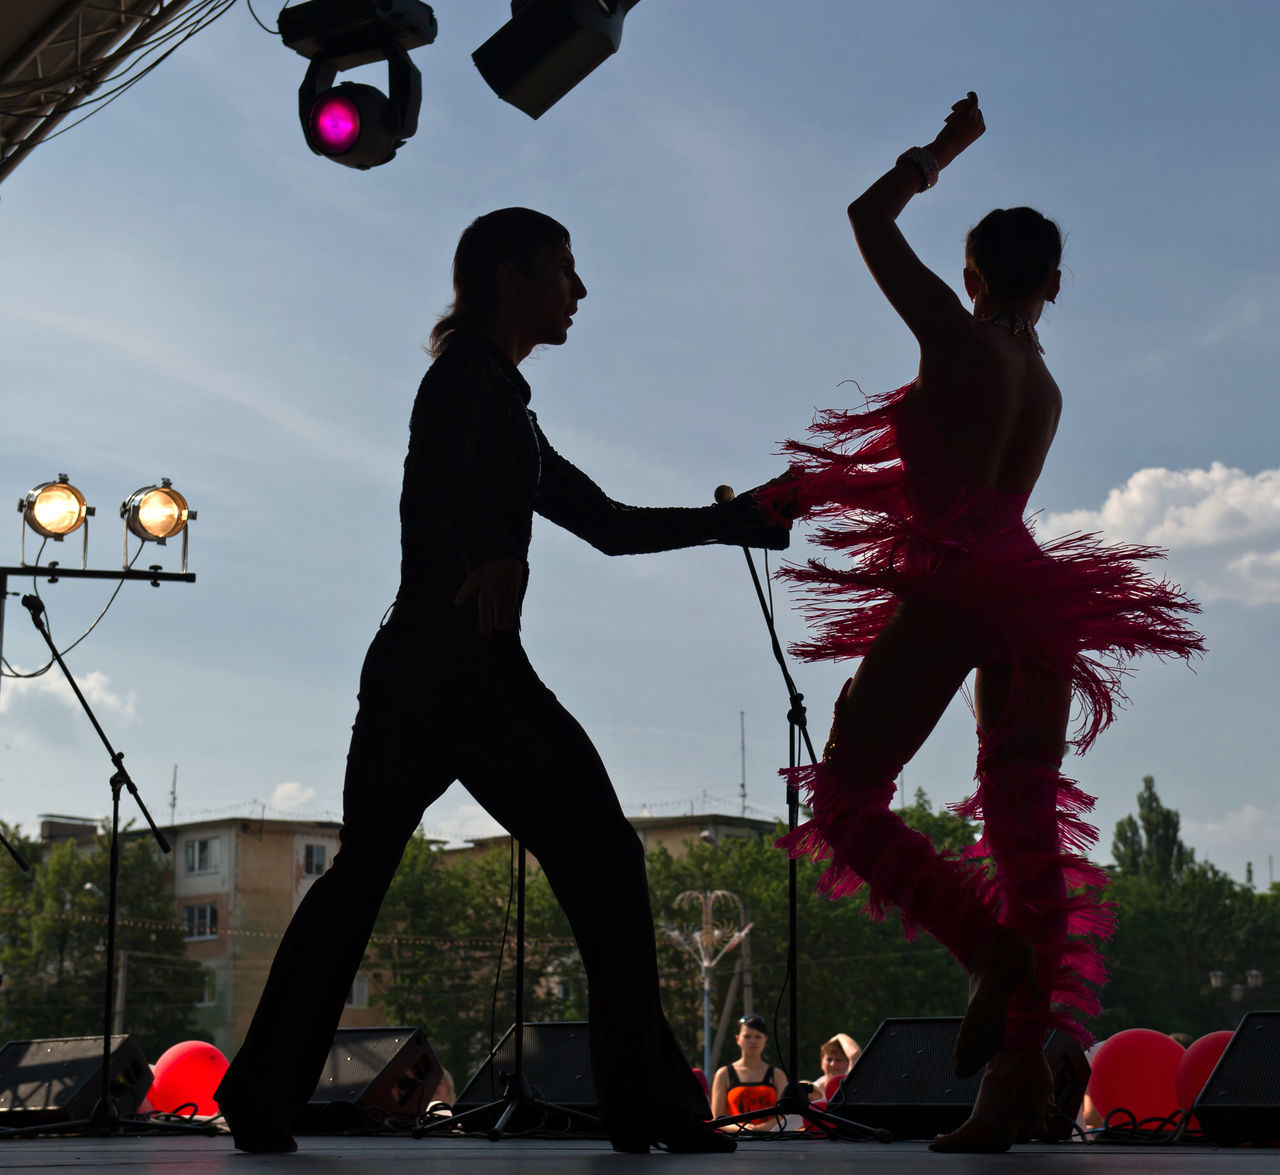 dancing, performance, dancer, leisure activity, skill, sky, real people, lifestyles, arts culture and entertainment, men, women, enjoyment, full length, motion, low angle view, outdoors, togetherness, stunt, day, architecture, city, people